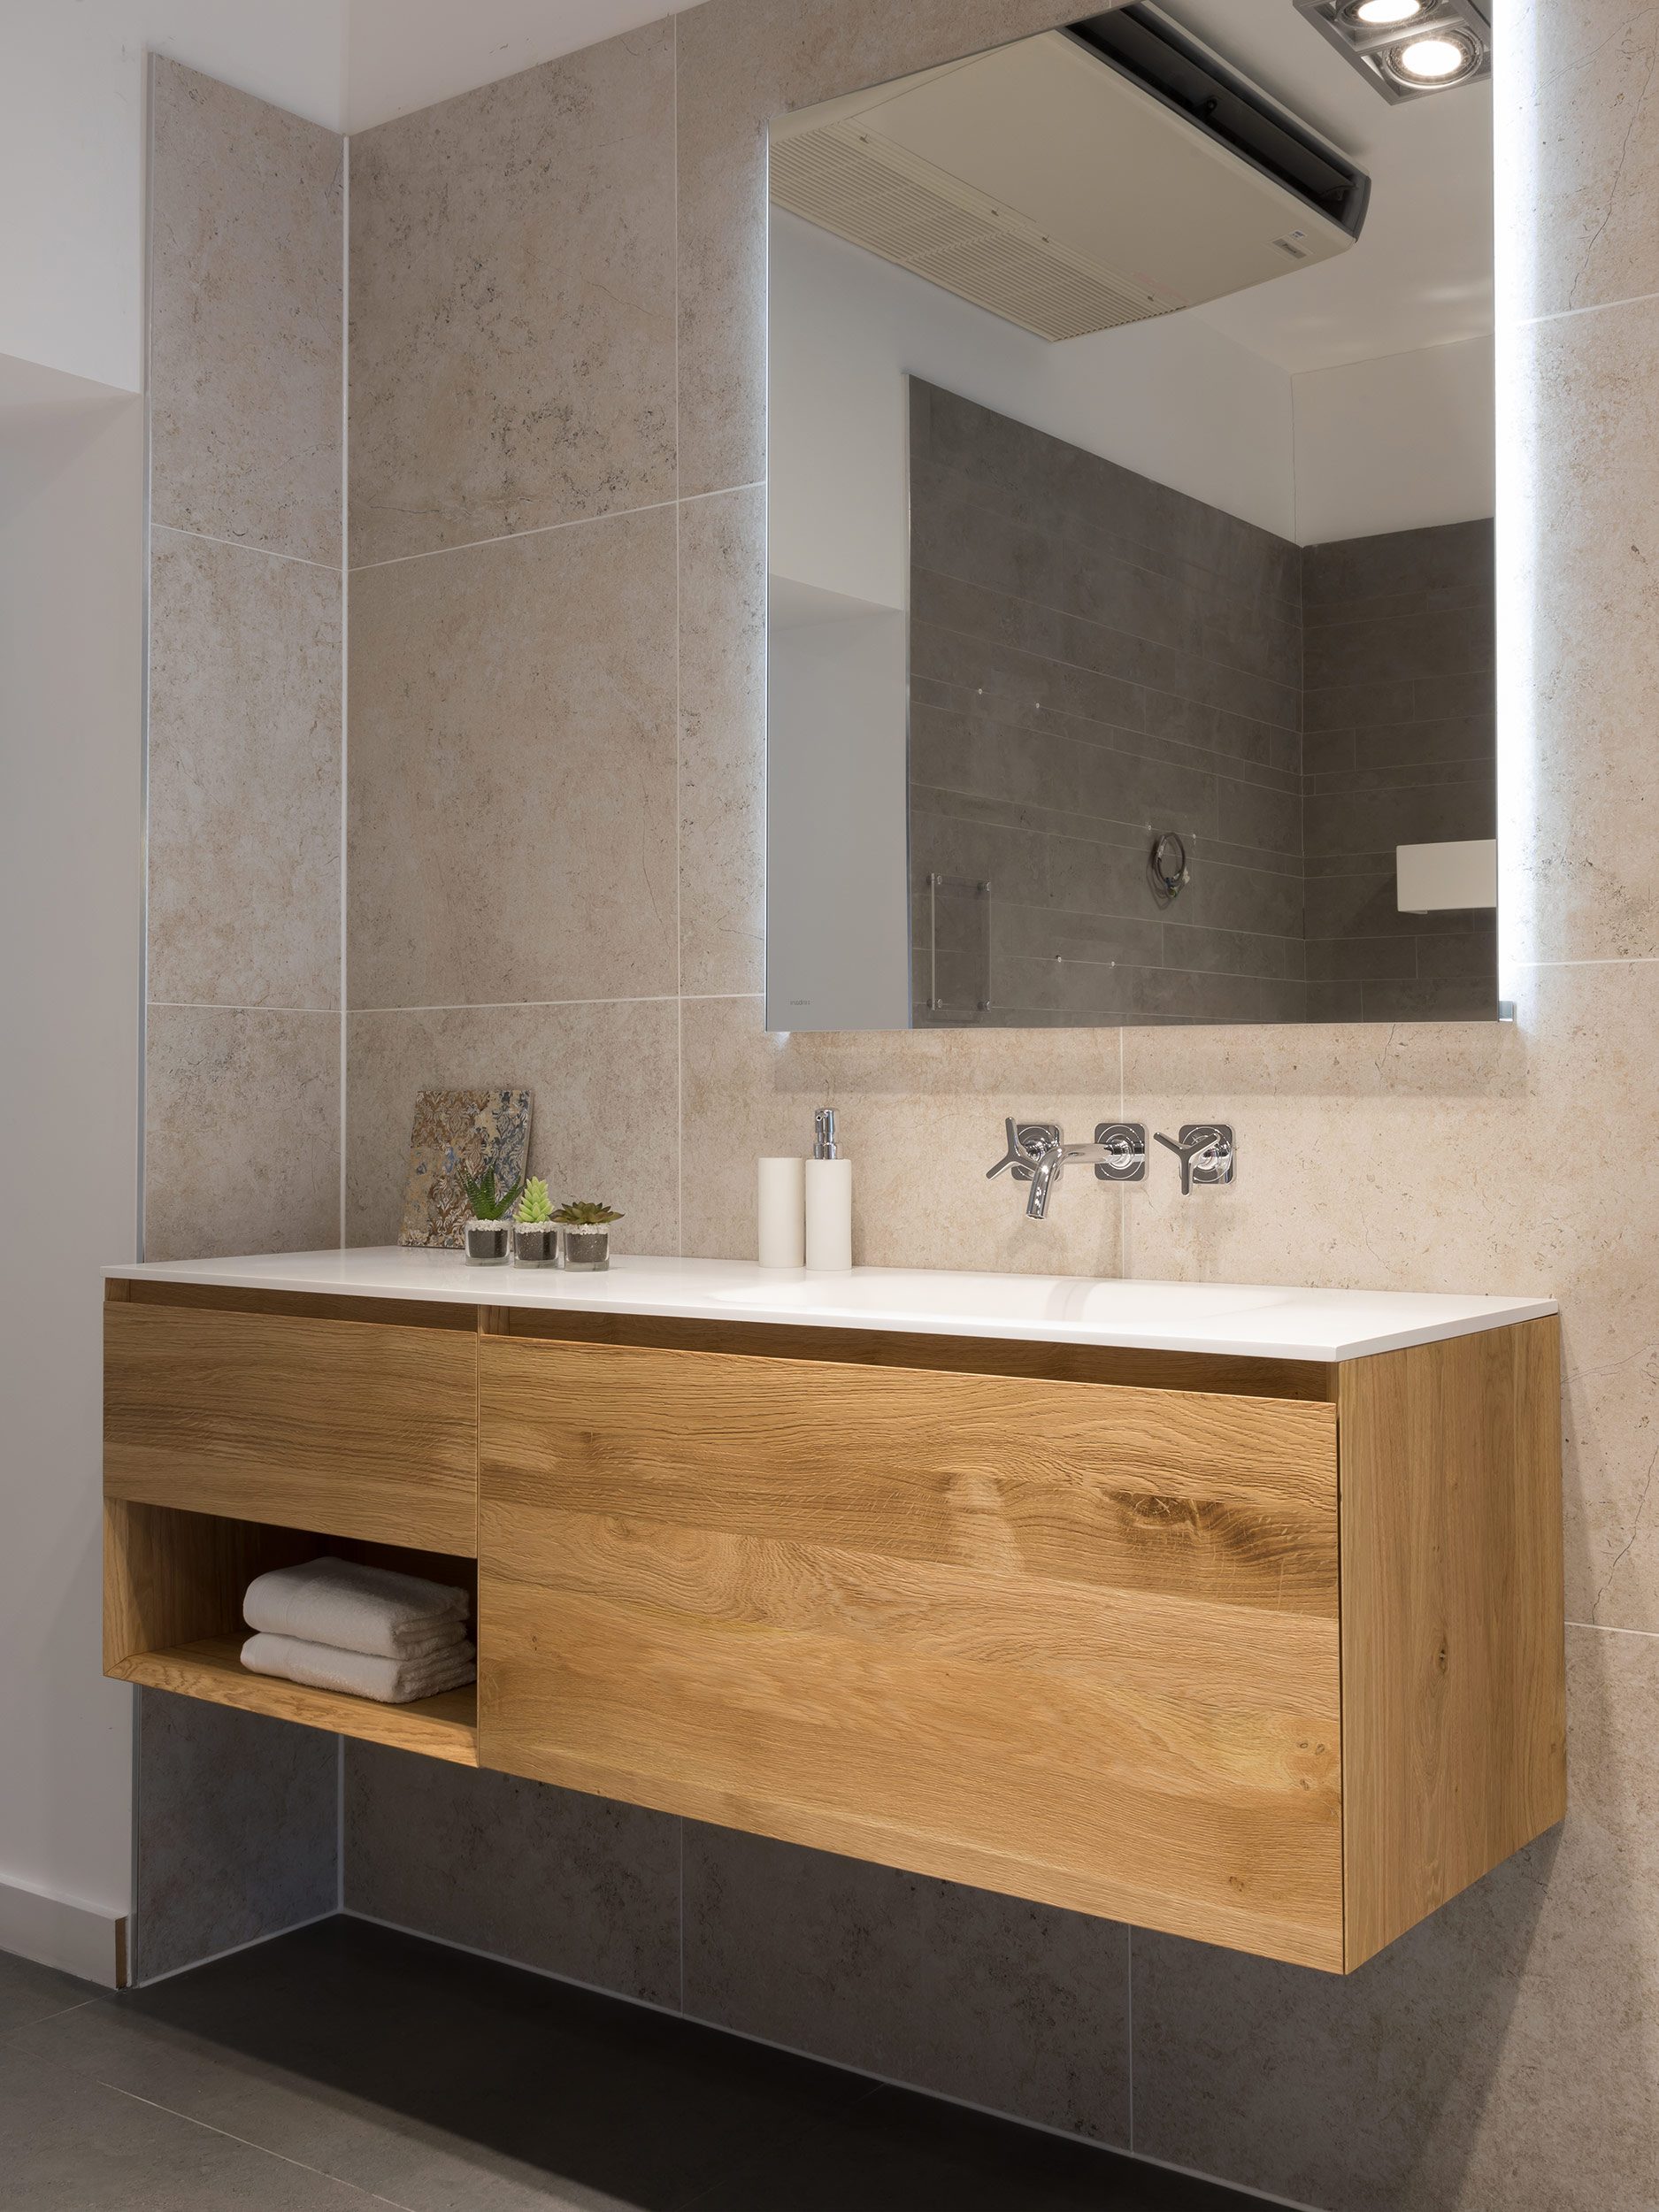 West One Bathrooms Oxshott Showroom Surrey 5b